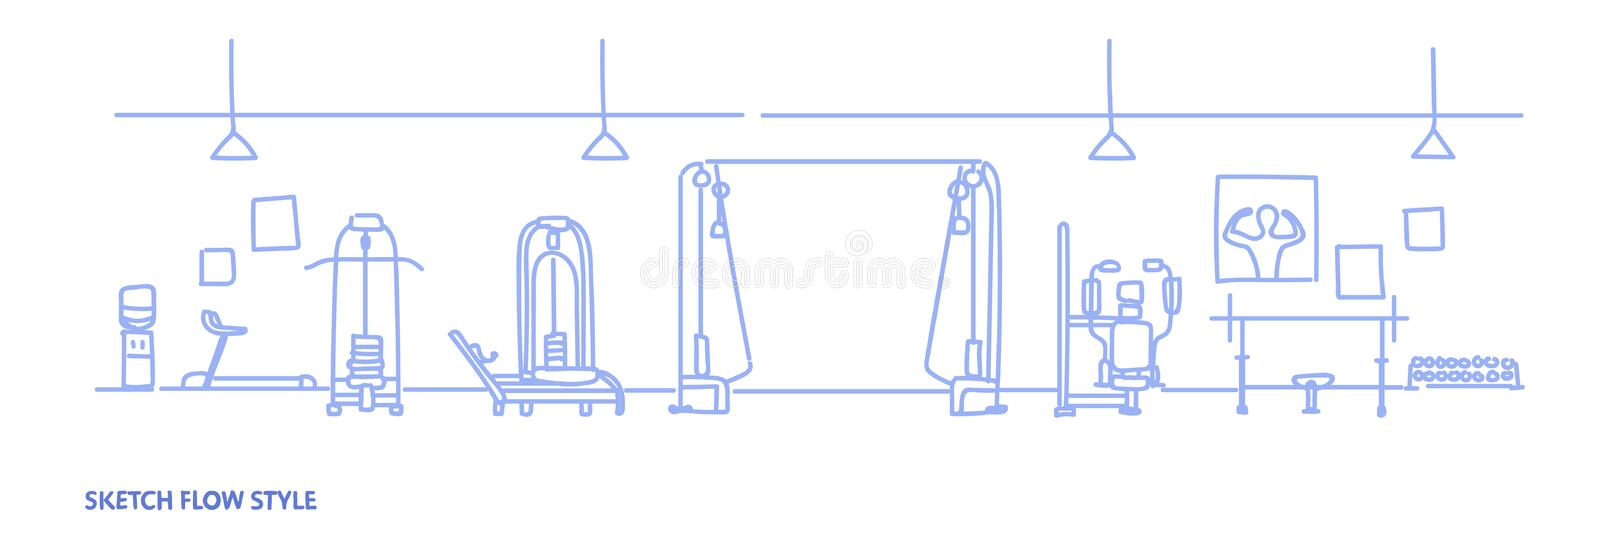 Modern gym interior equipment for workout empty no people health fitness club sketch flow style horizontal. Vector illustration vector illustration